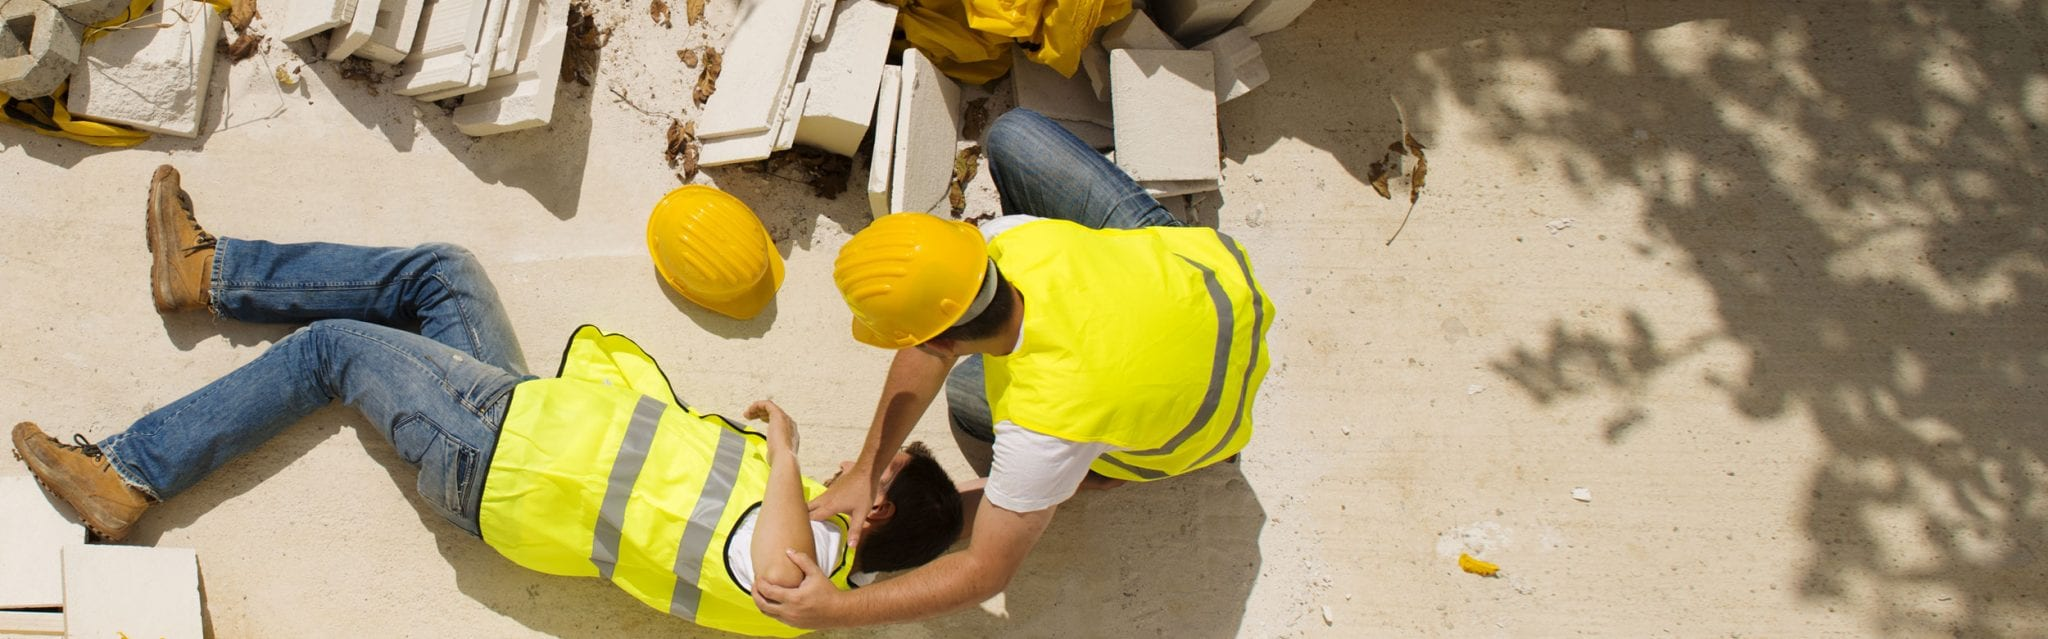 A man taking care of another co-worker's injury at construction site